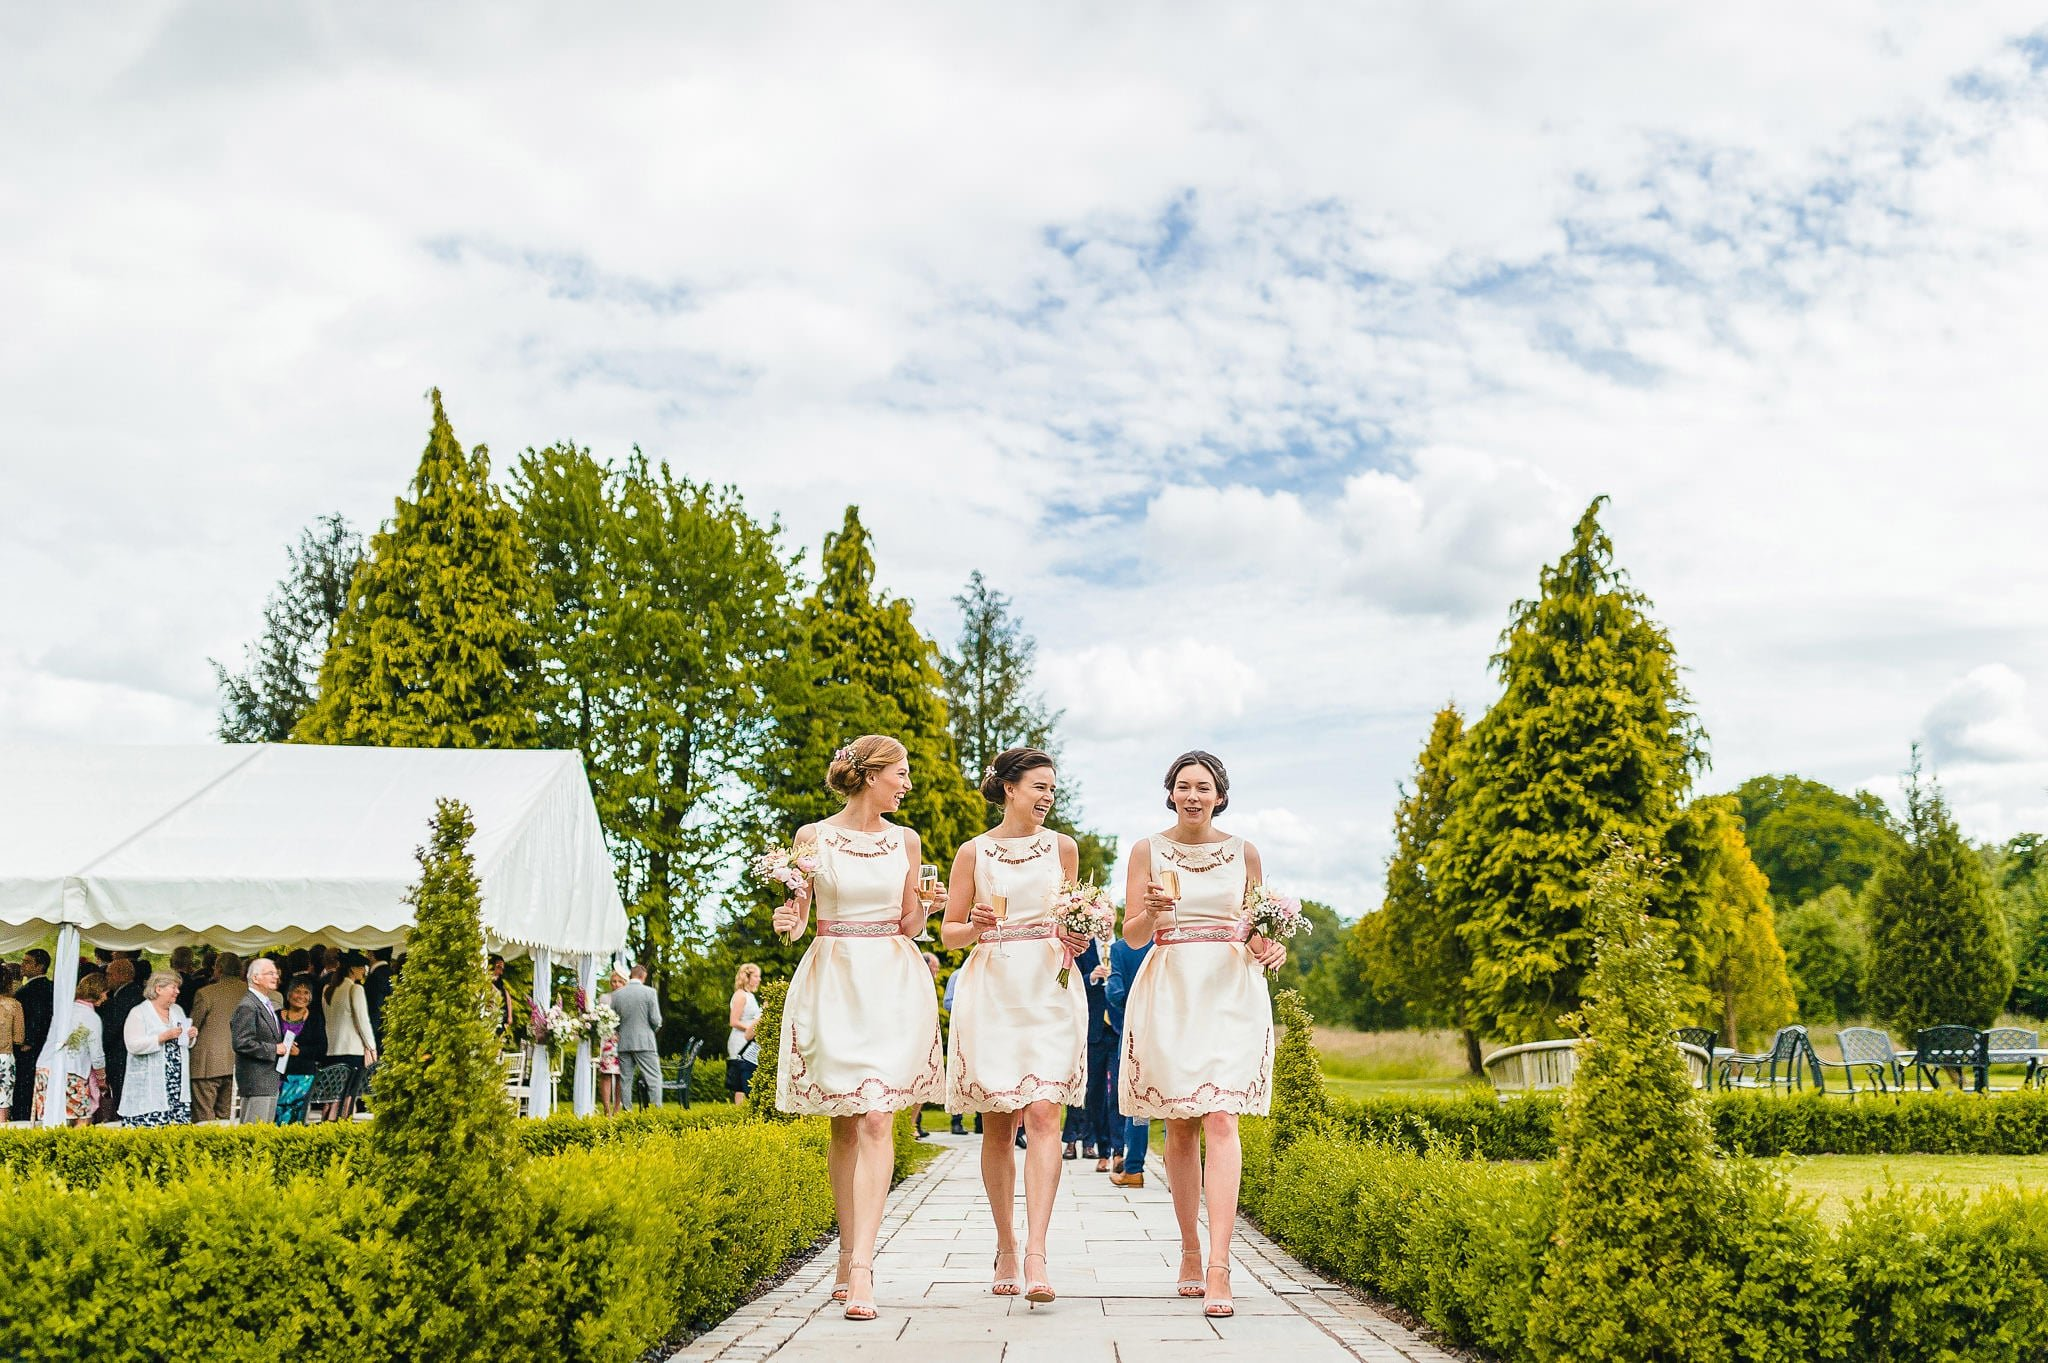 Lemore Manor Wedding Photographer | Hannah and Angus 32